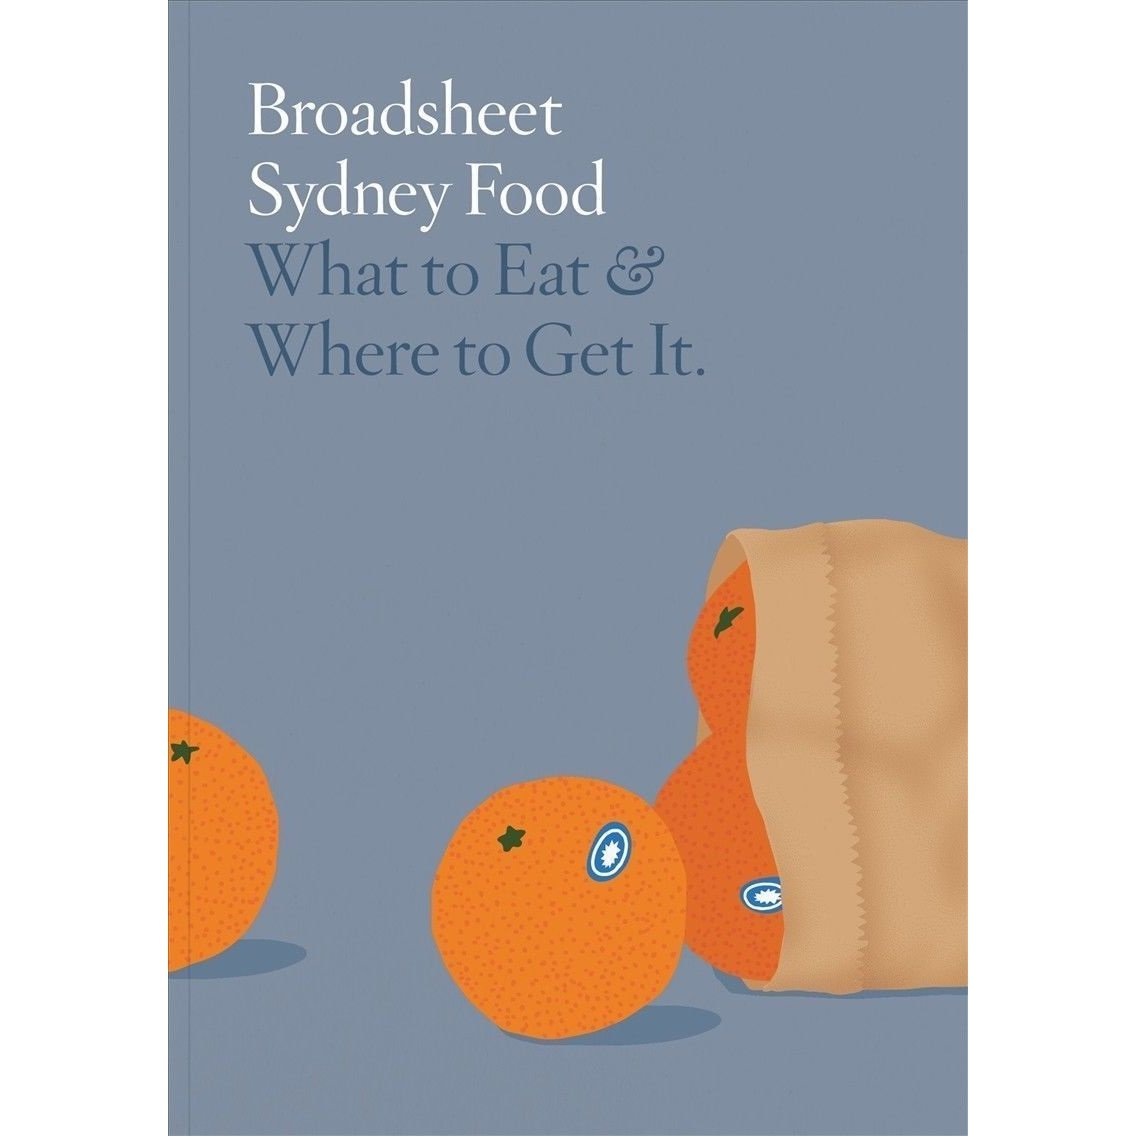 Broadsheet Sydney Food | What To Eat & Where To Get It - - Broadsheet - Yellow Octopus